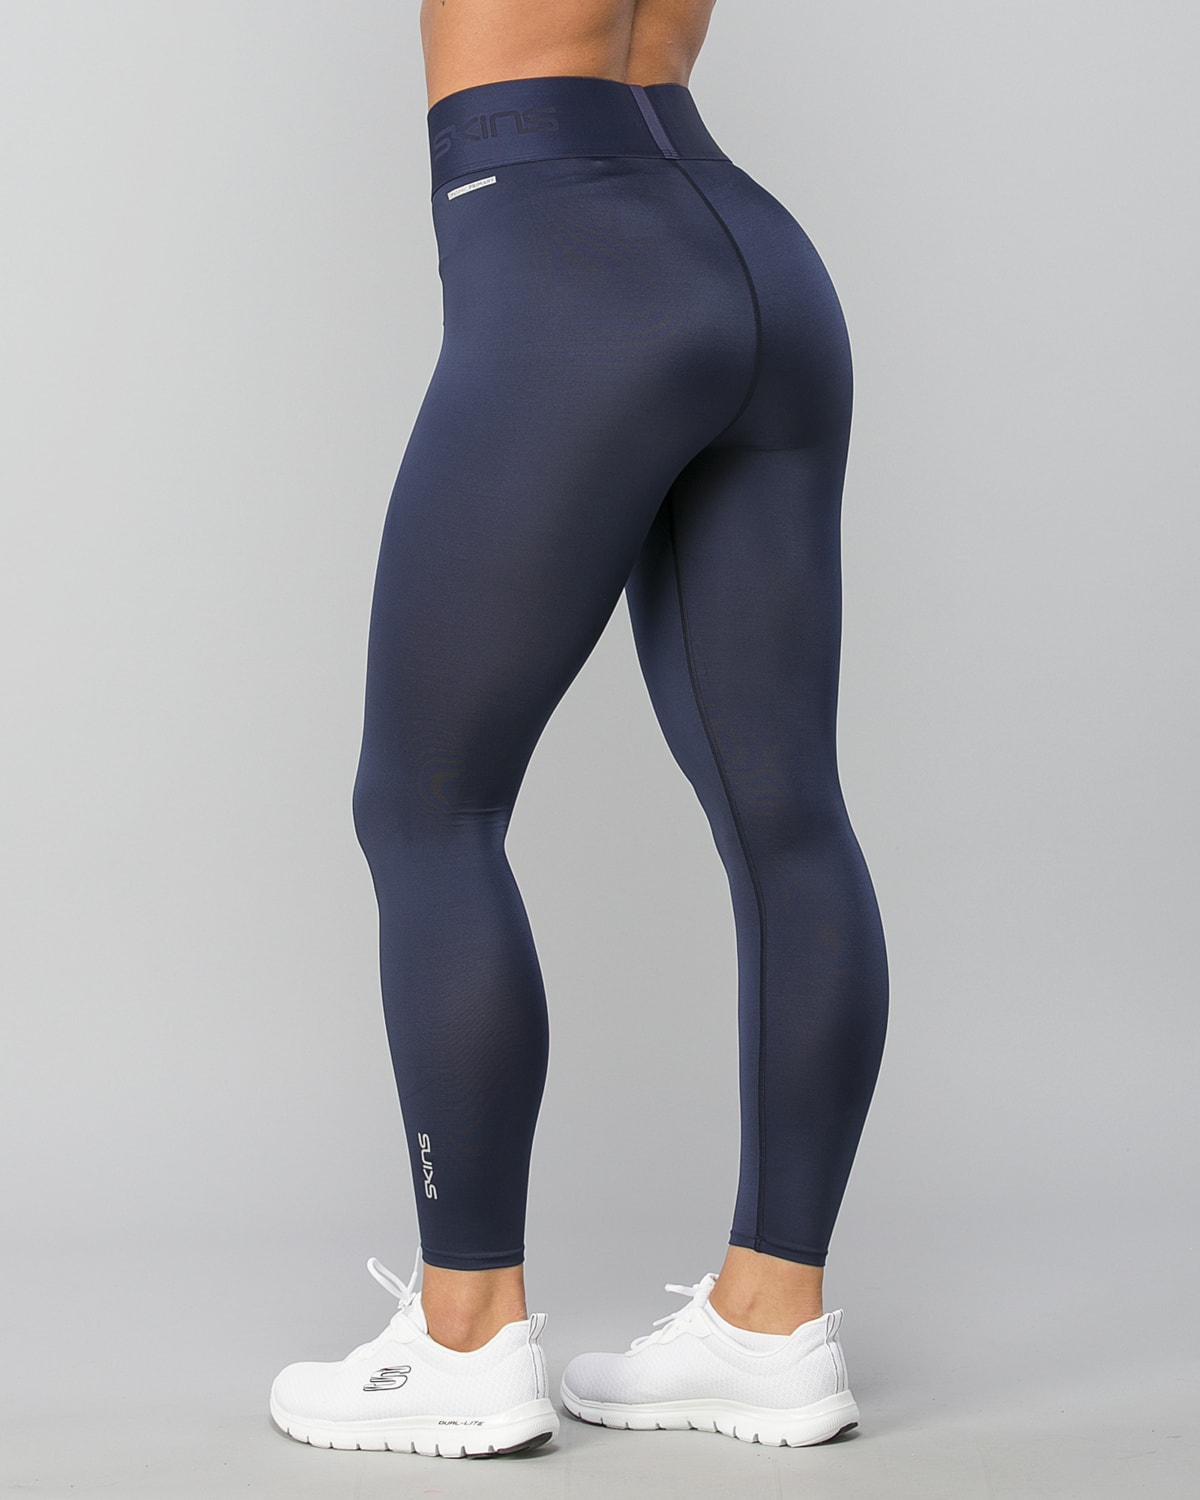 Skins-DNAmic-Primary-Womens-7-8-Tights-Navy-Blue